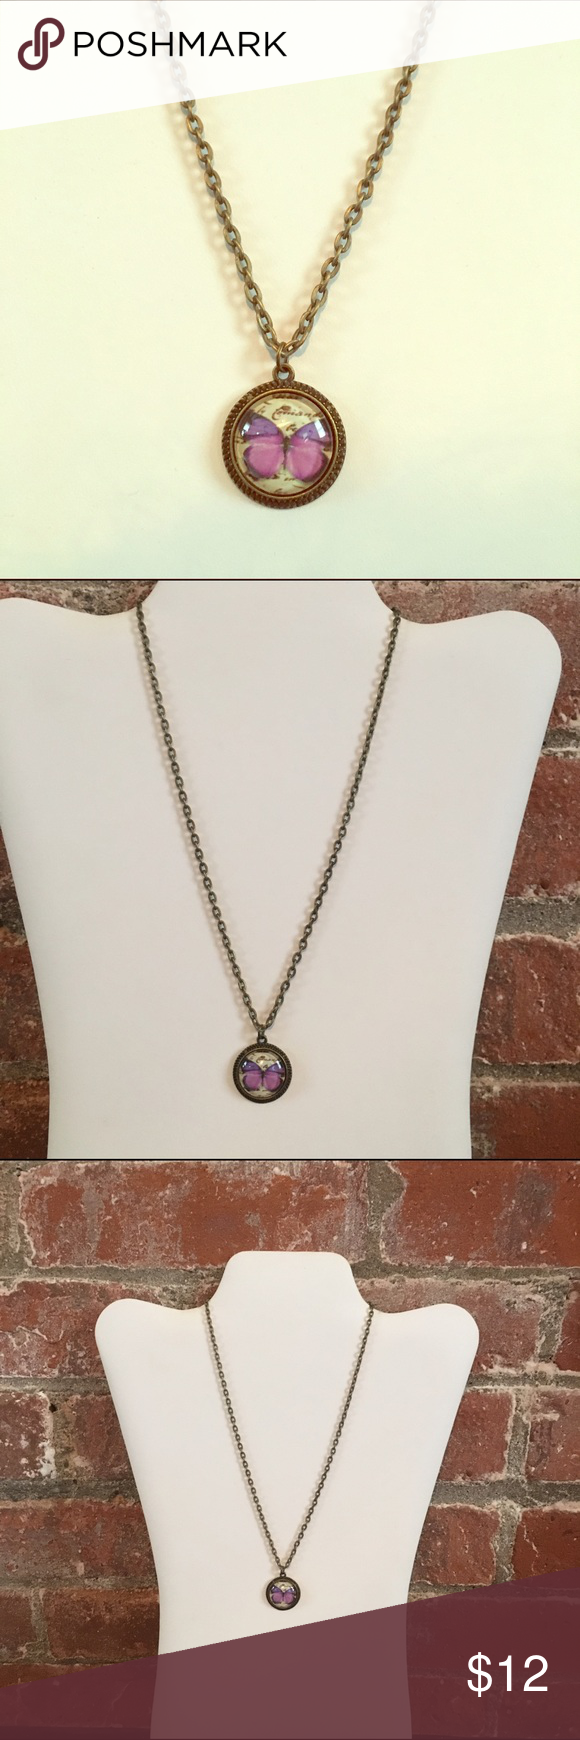 """Butterfly pendant necklace Antiqued bronze purple butterfly pendant necklace. Chain is 18"""" pendant is .8"""" Jewelry Necklaces"""